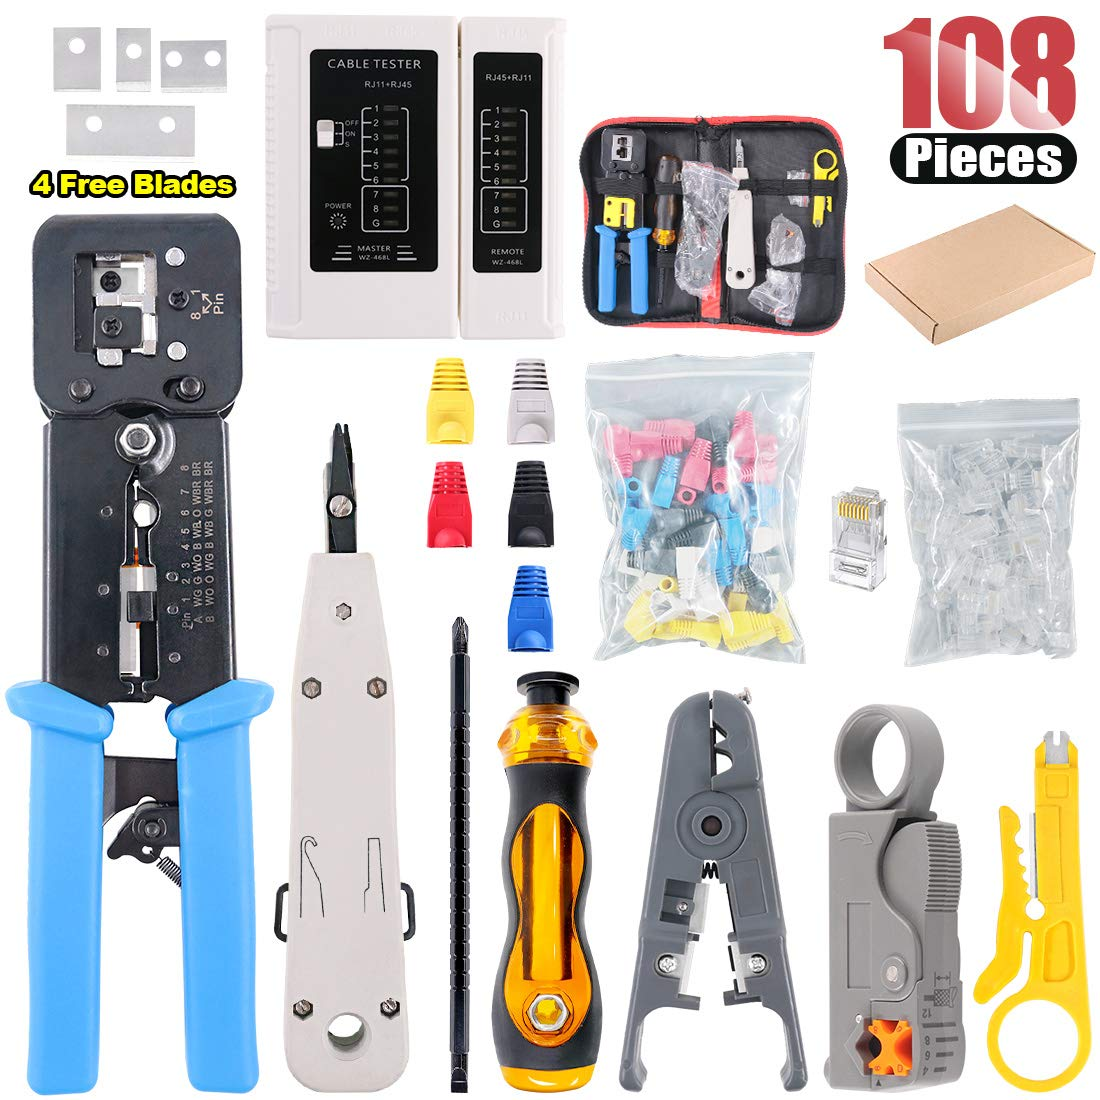 Hilitchi 108 Pcs Network Tool Kit Includes Portable Phone Cable Crimper, Cable Tester, Wire Stripping Cutter, 50Pcs Mixed Color CAT5E CAT6 RJ45 Boot, 50Pcs, Ethernet Cable Connectors, Punch Down Tool by Hilitchi